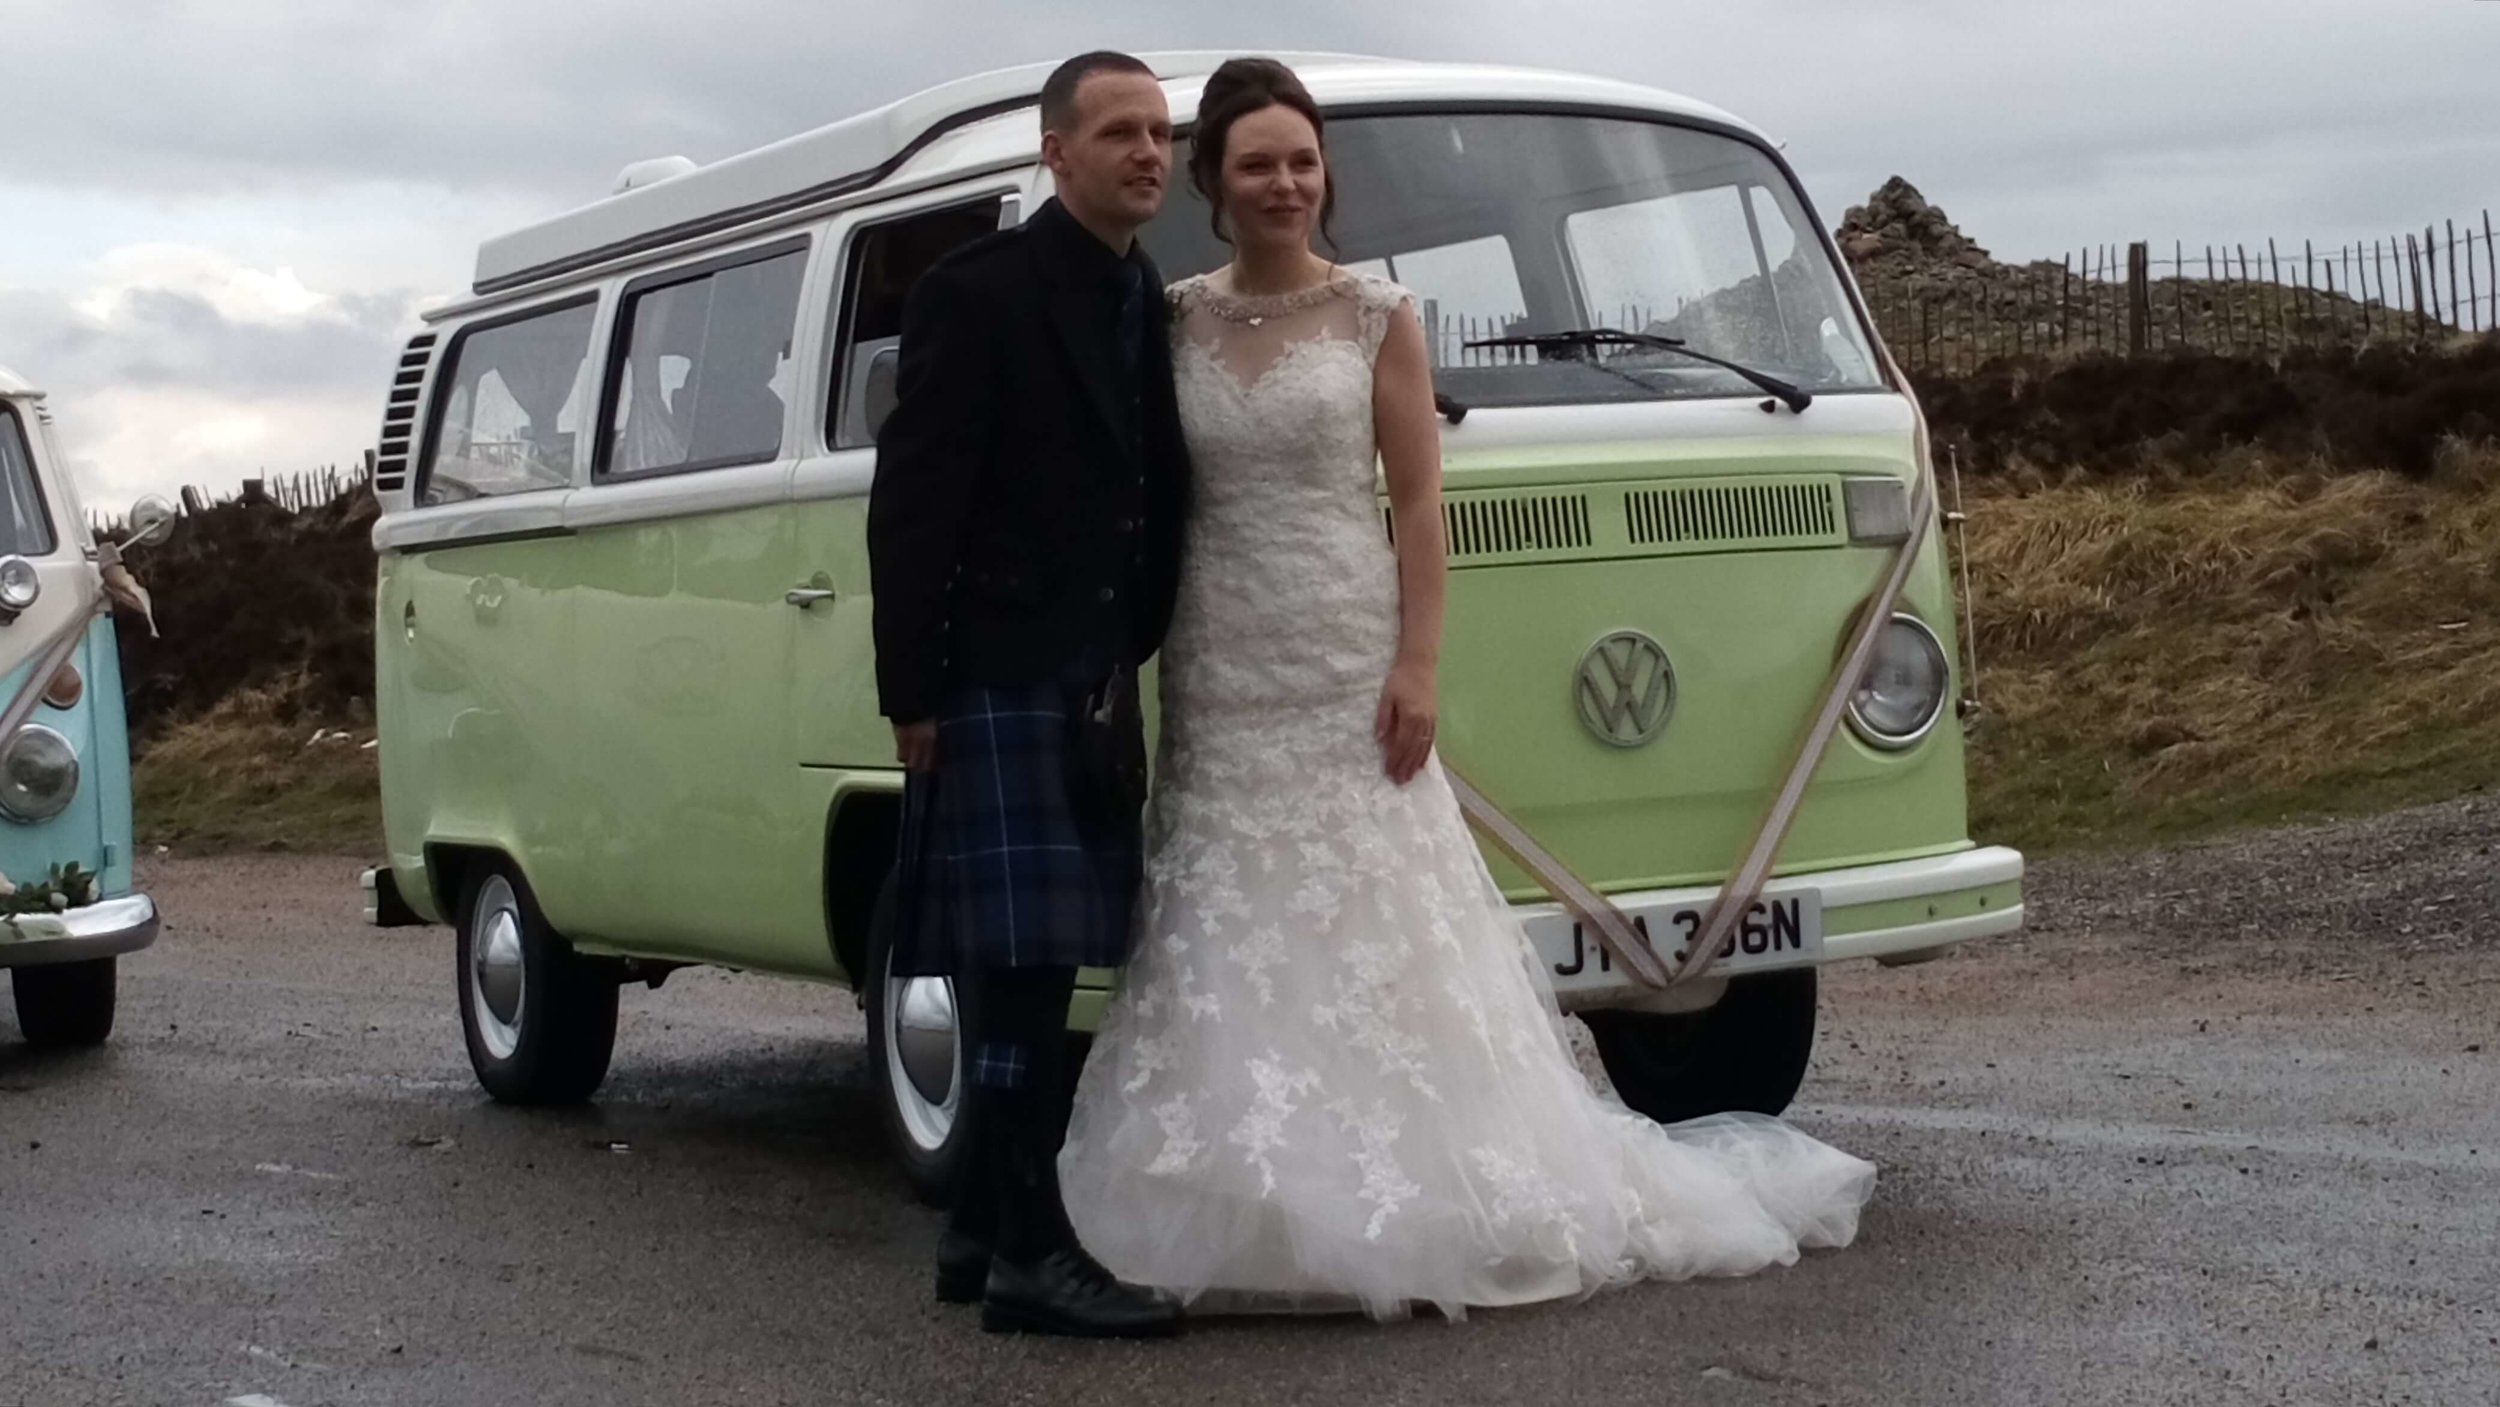 VW-camper-wedding-car-moomin-1.jpg